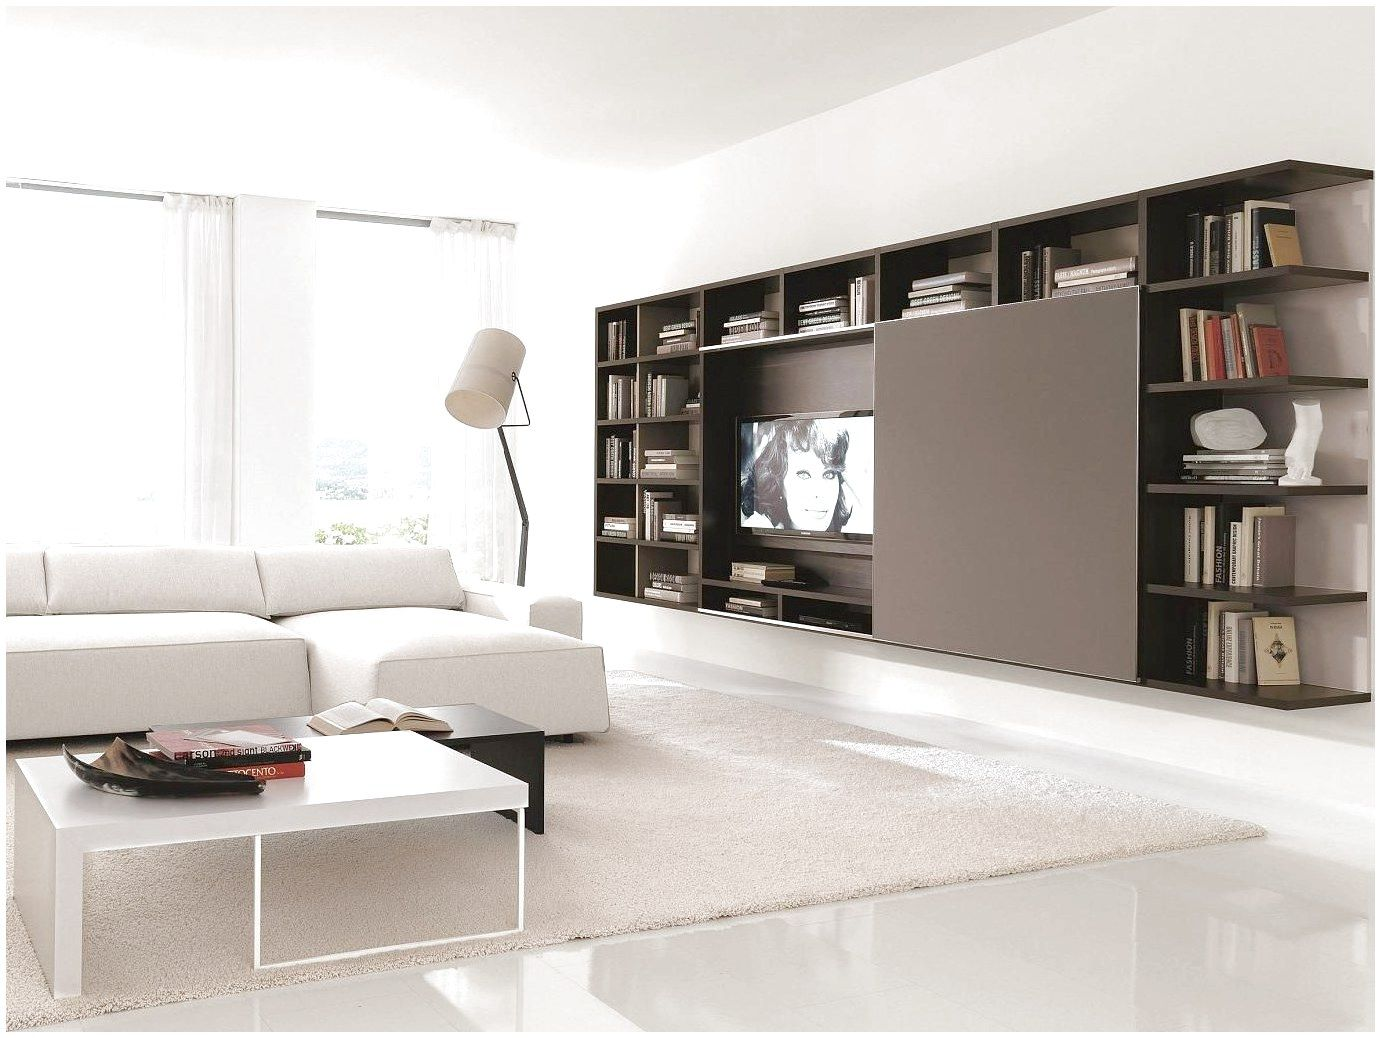 Furniture Dark Brown Wall Storage System For Living Room Design With White Interior Co Living Room Furniture Layout Trendy Living Rooms Living Room Wall Units #white #living #room #wall #units